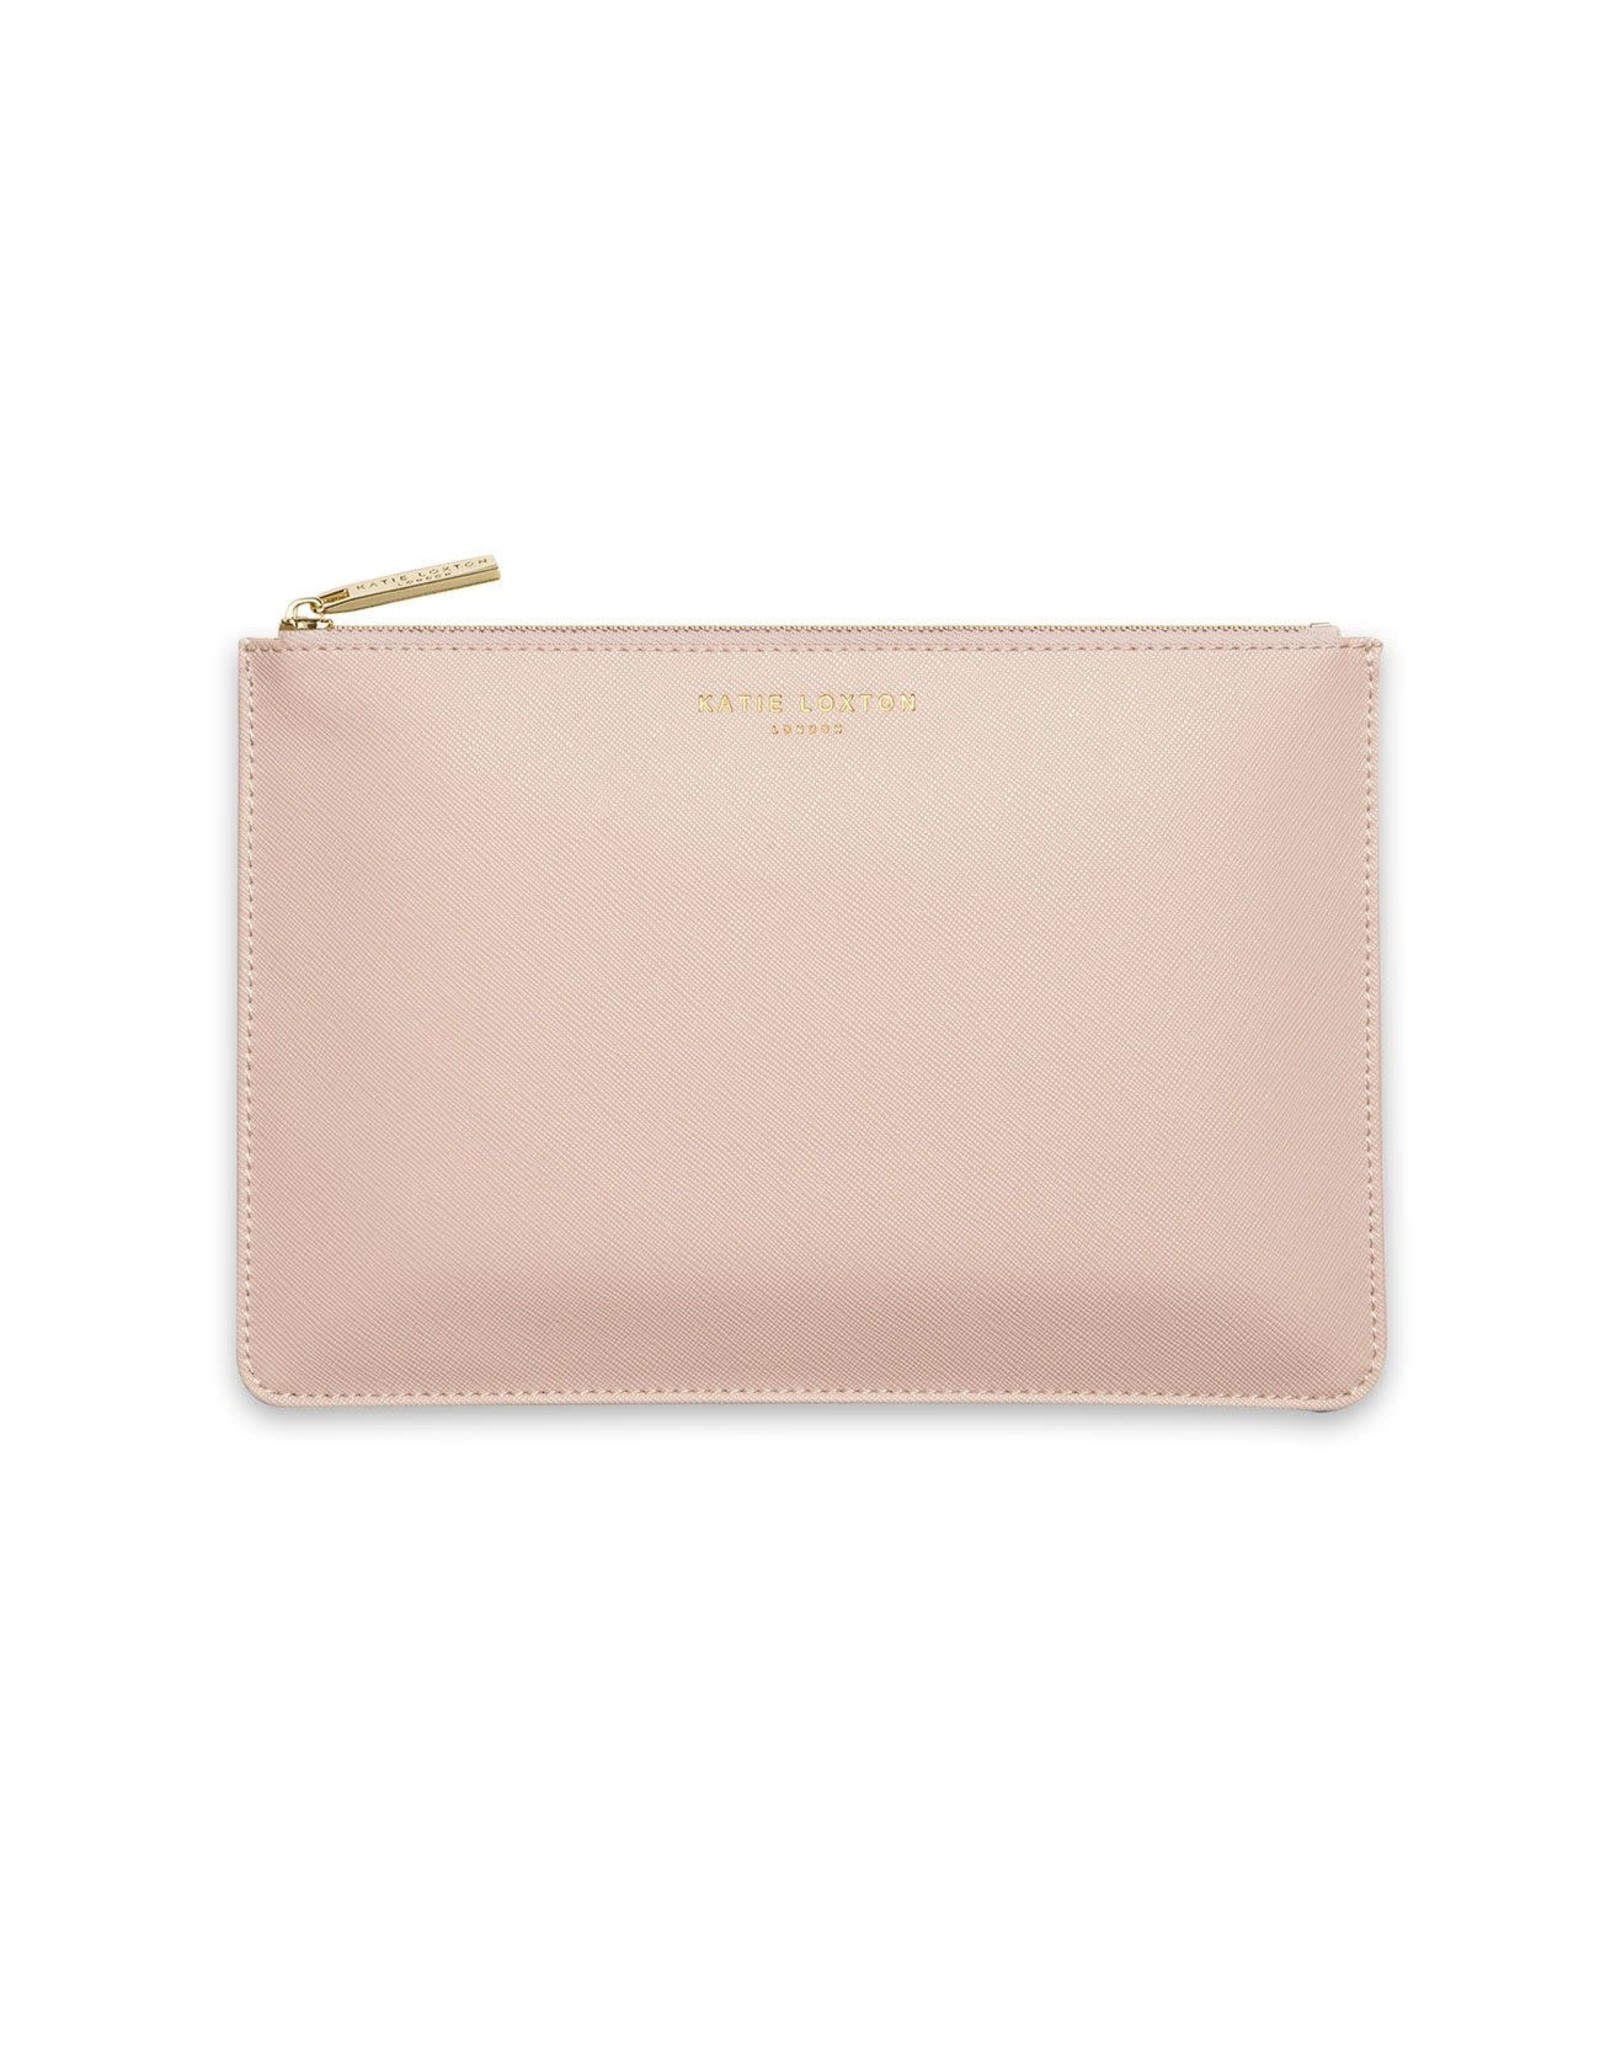 Katie Loxton Perfect Pouch Giftset - Mum in a Million